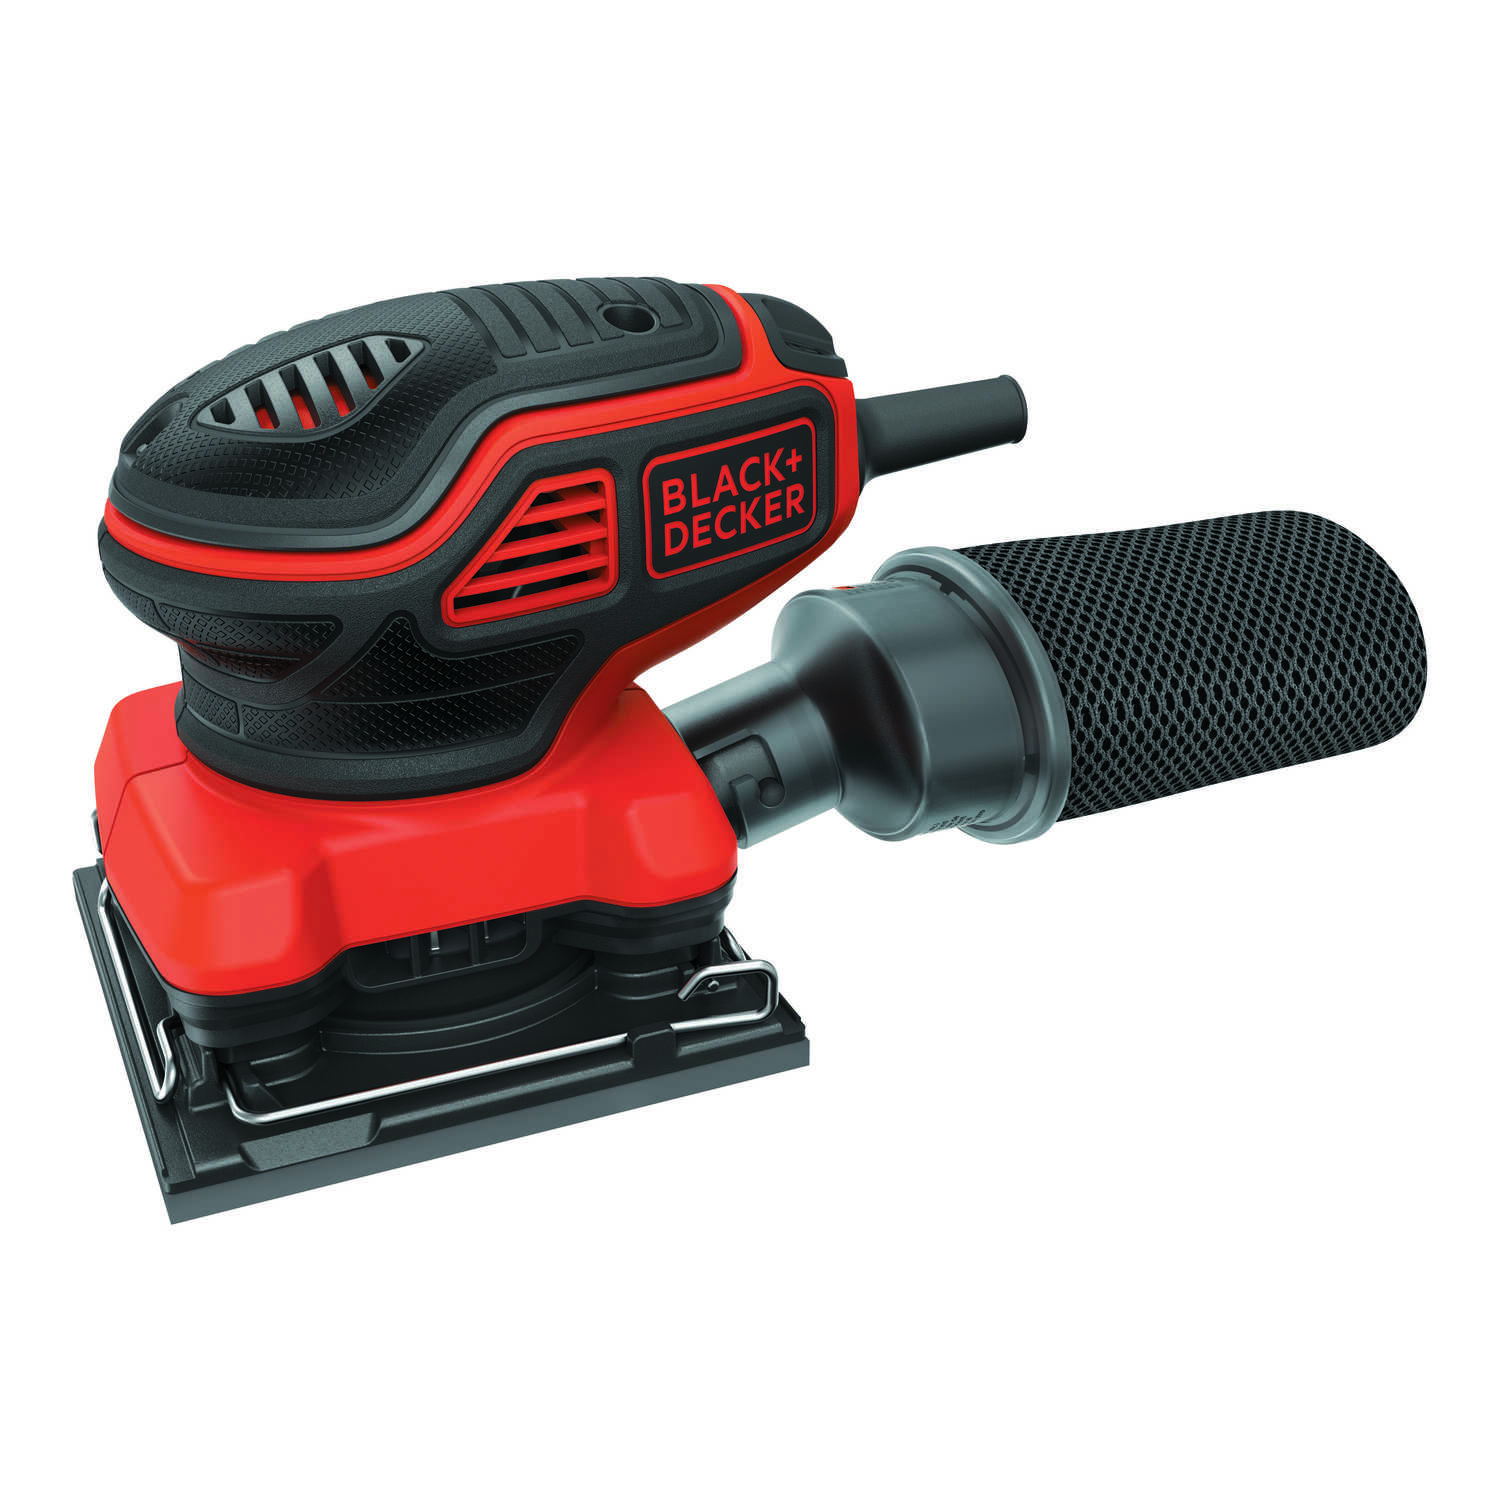 Black+Decker  120  1/4 Sheet  Corded  Palm Sander  4.25 in. L x 4.5 in. W 1600 opm